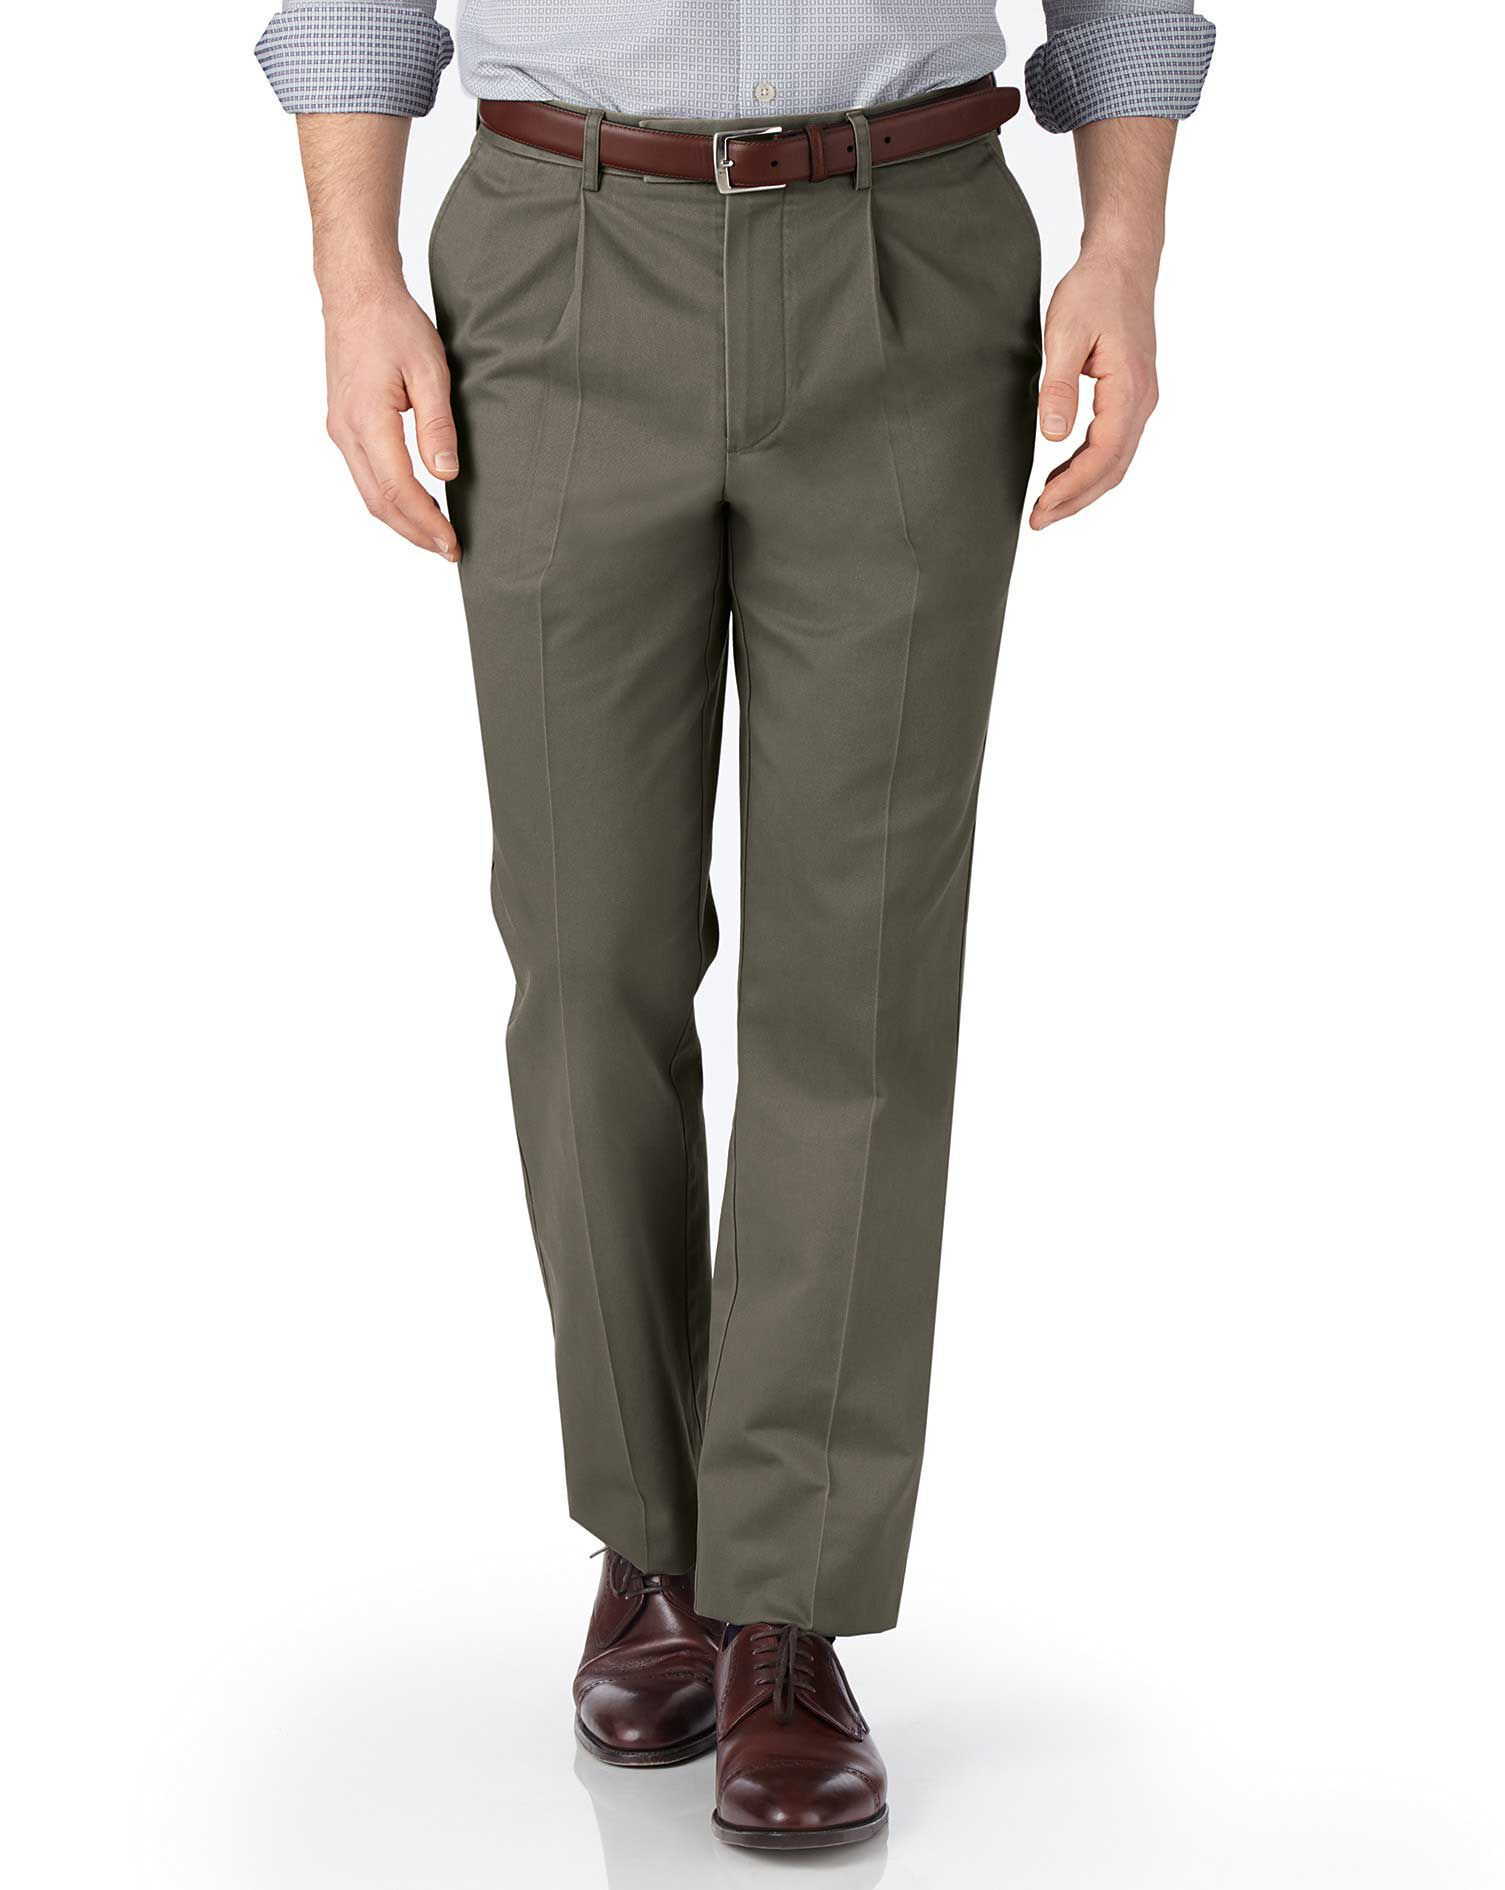 Olive Green Classic Fit Single Pleat Non-Iron Cotton Chino Trousers Size W30 L38 by Charles Tyrwhitt